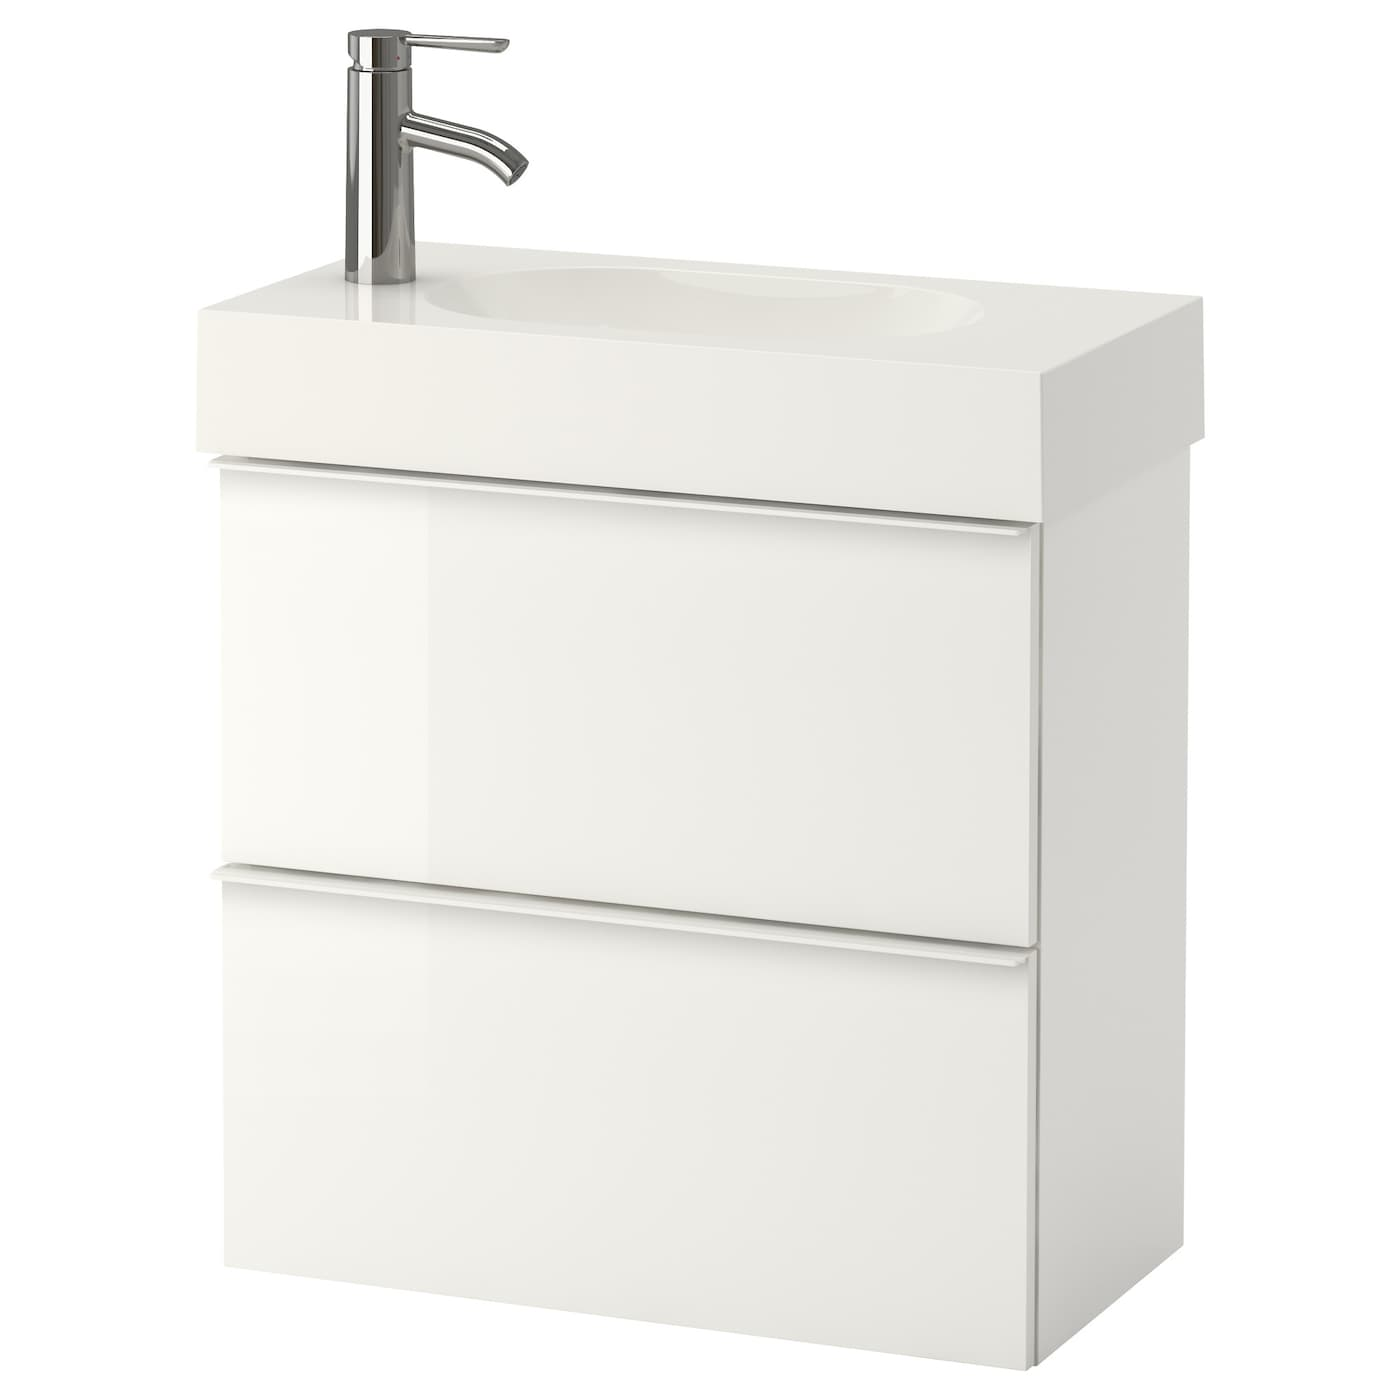 IKEA BRÅVIKEN/GODMORGON wash-stand with 2 drawers